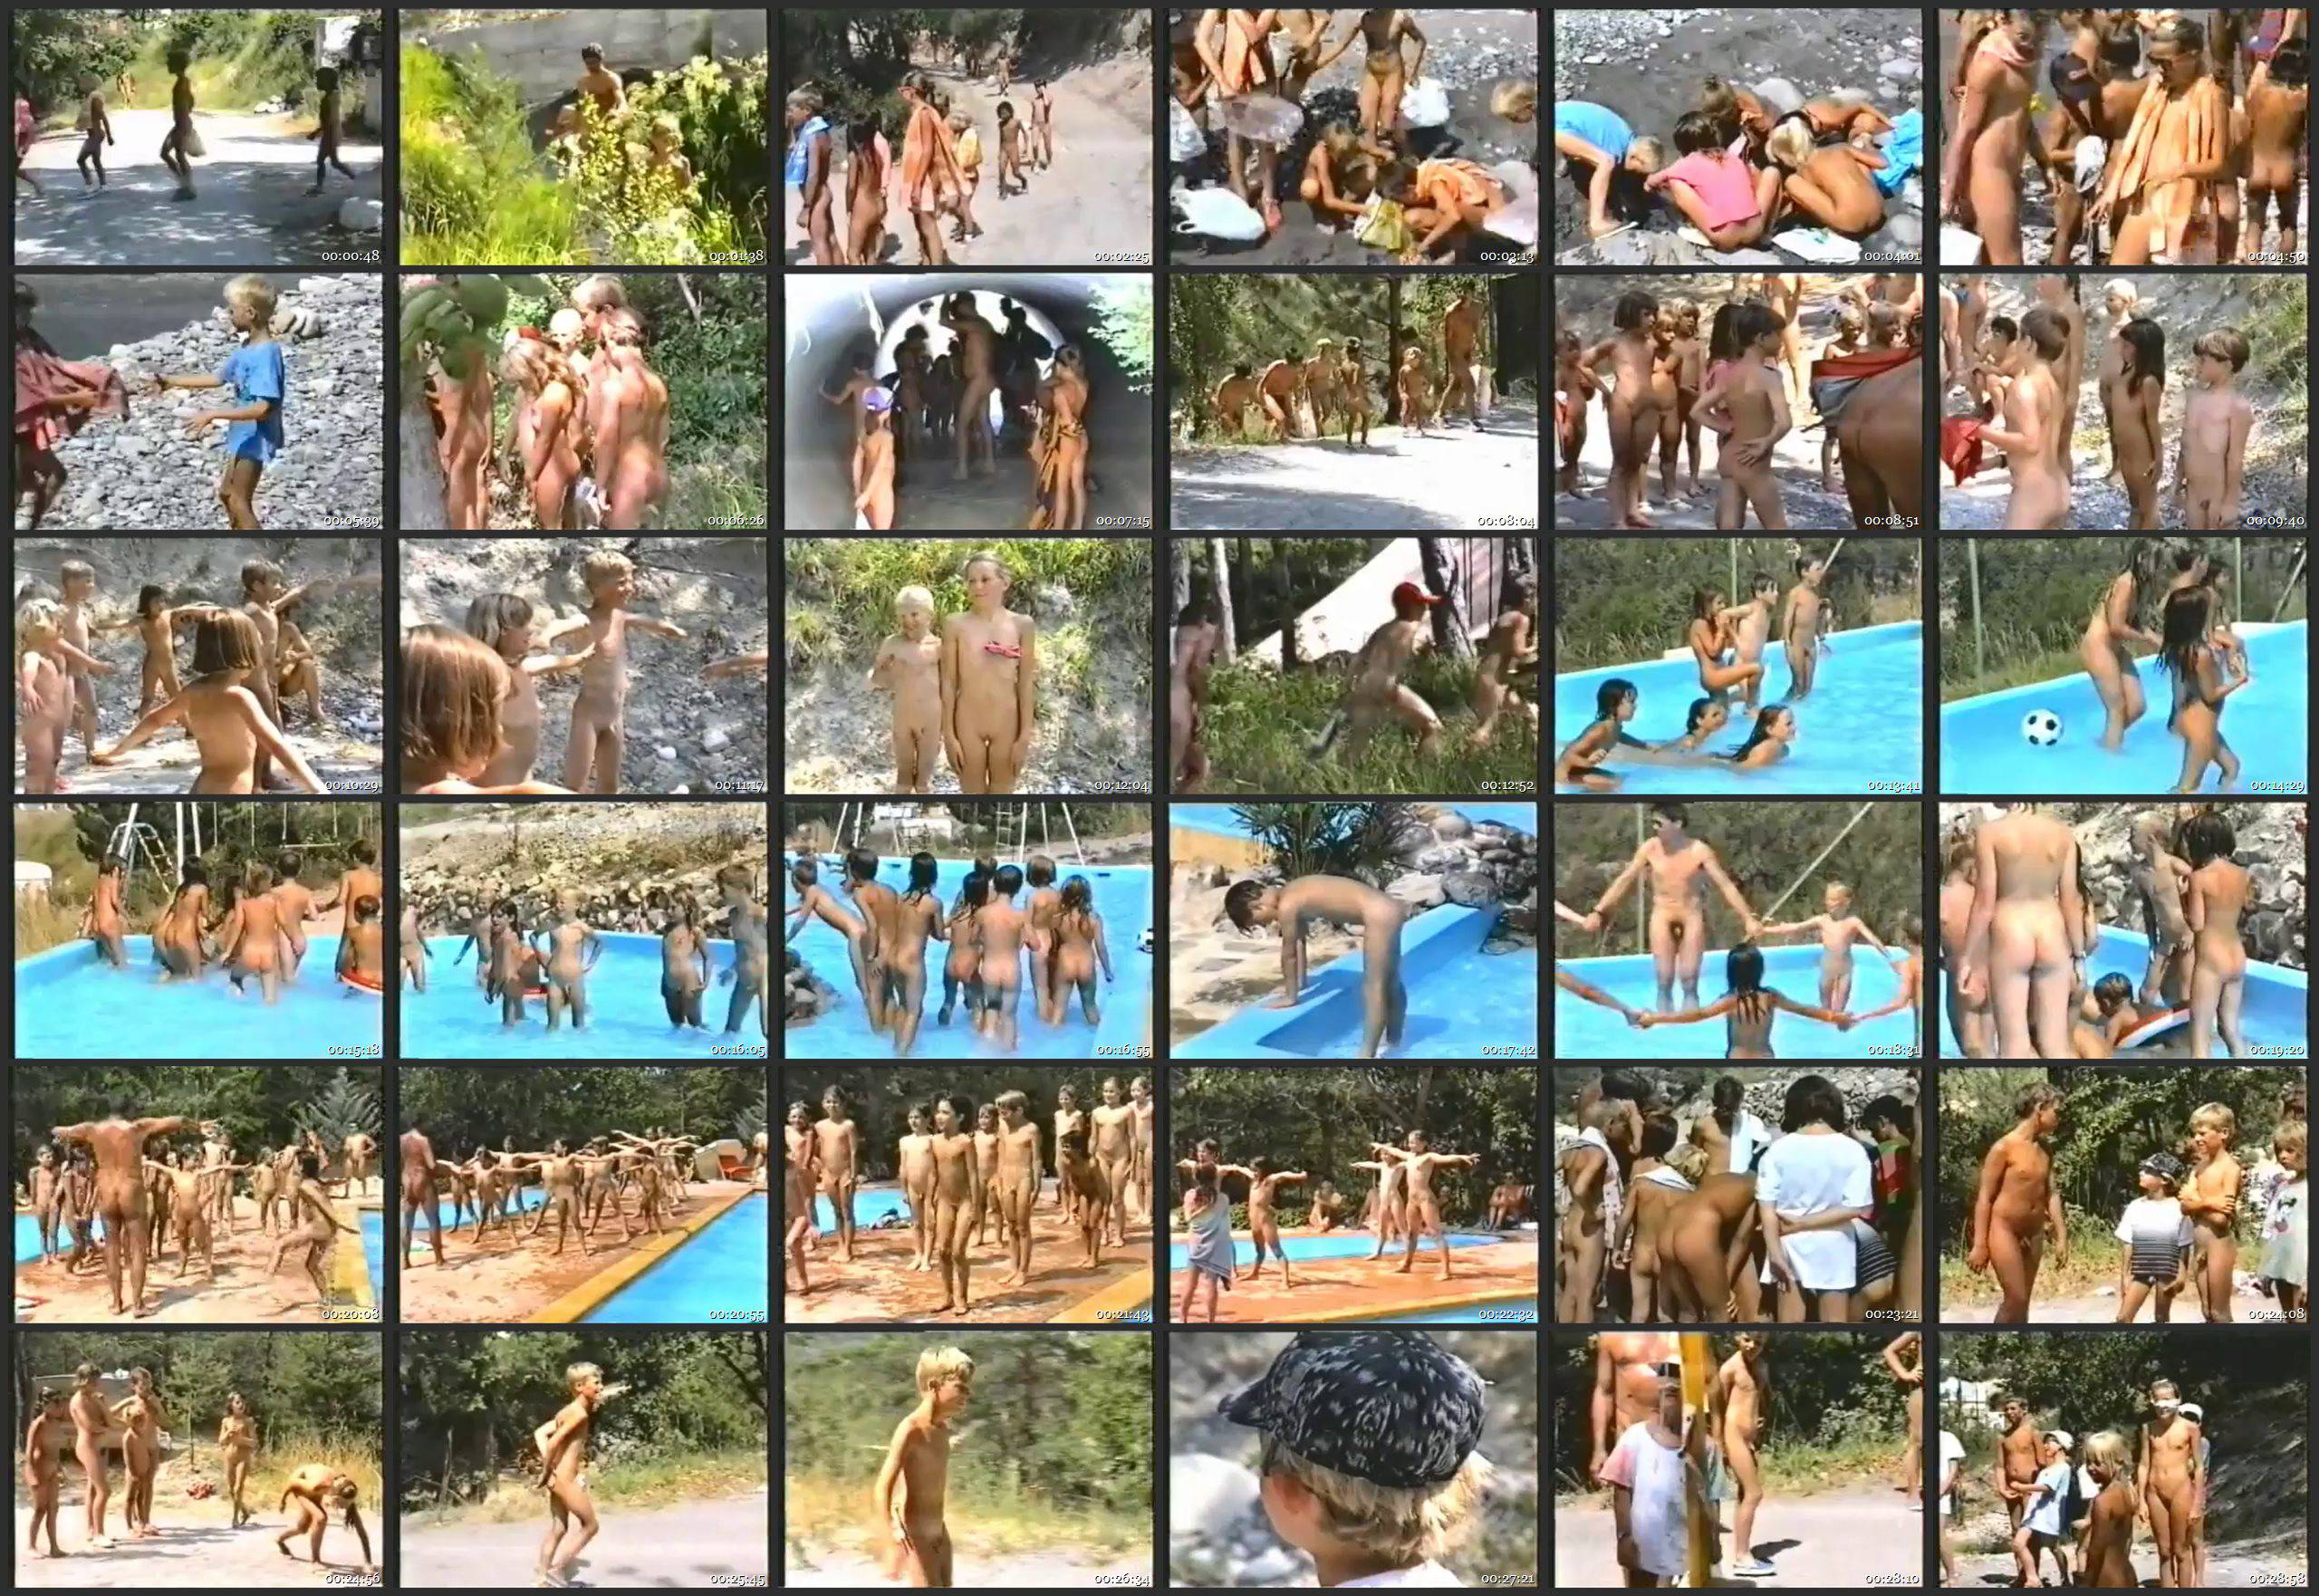 Nudist Movies Summer Fun and Games - Thumbnails